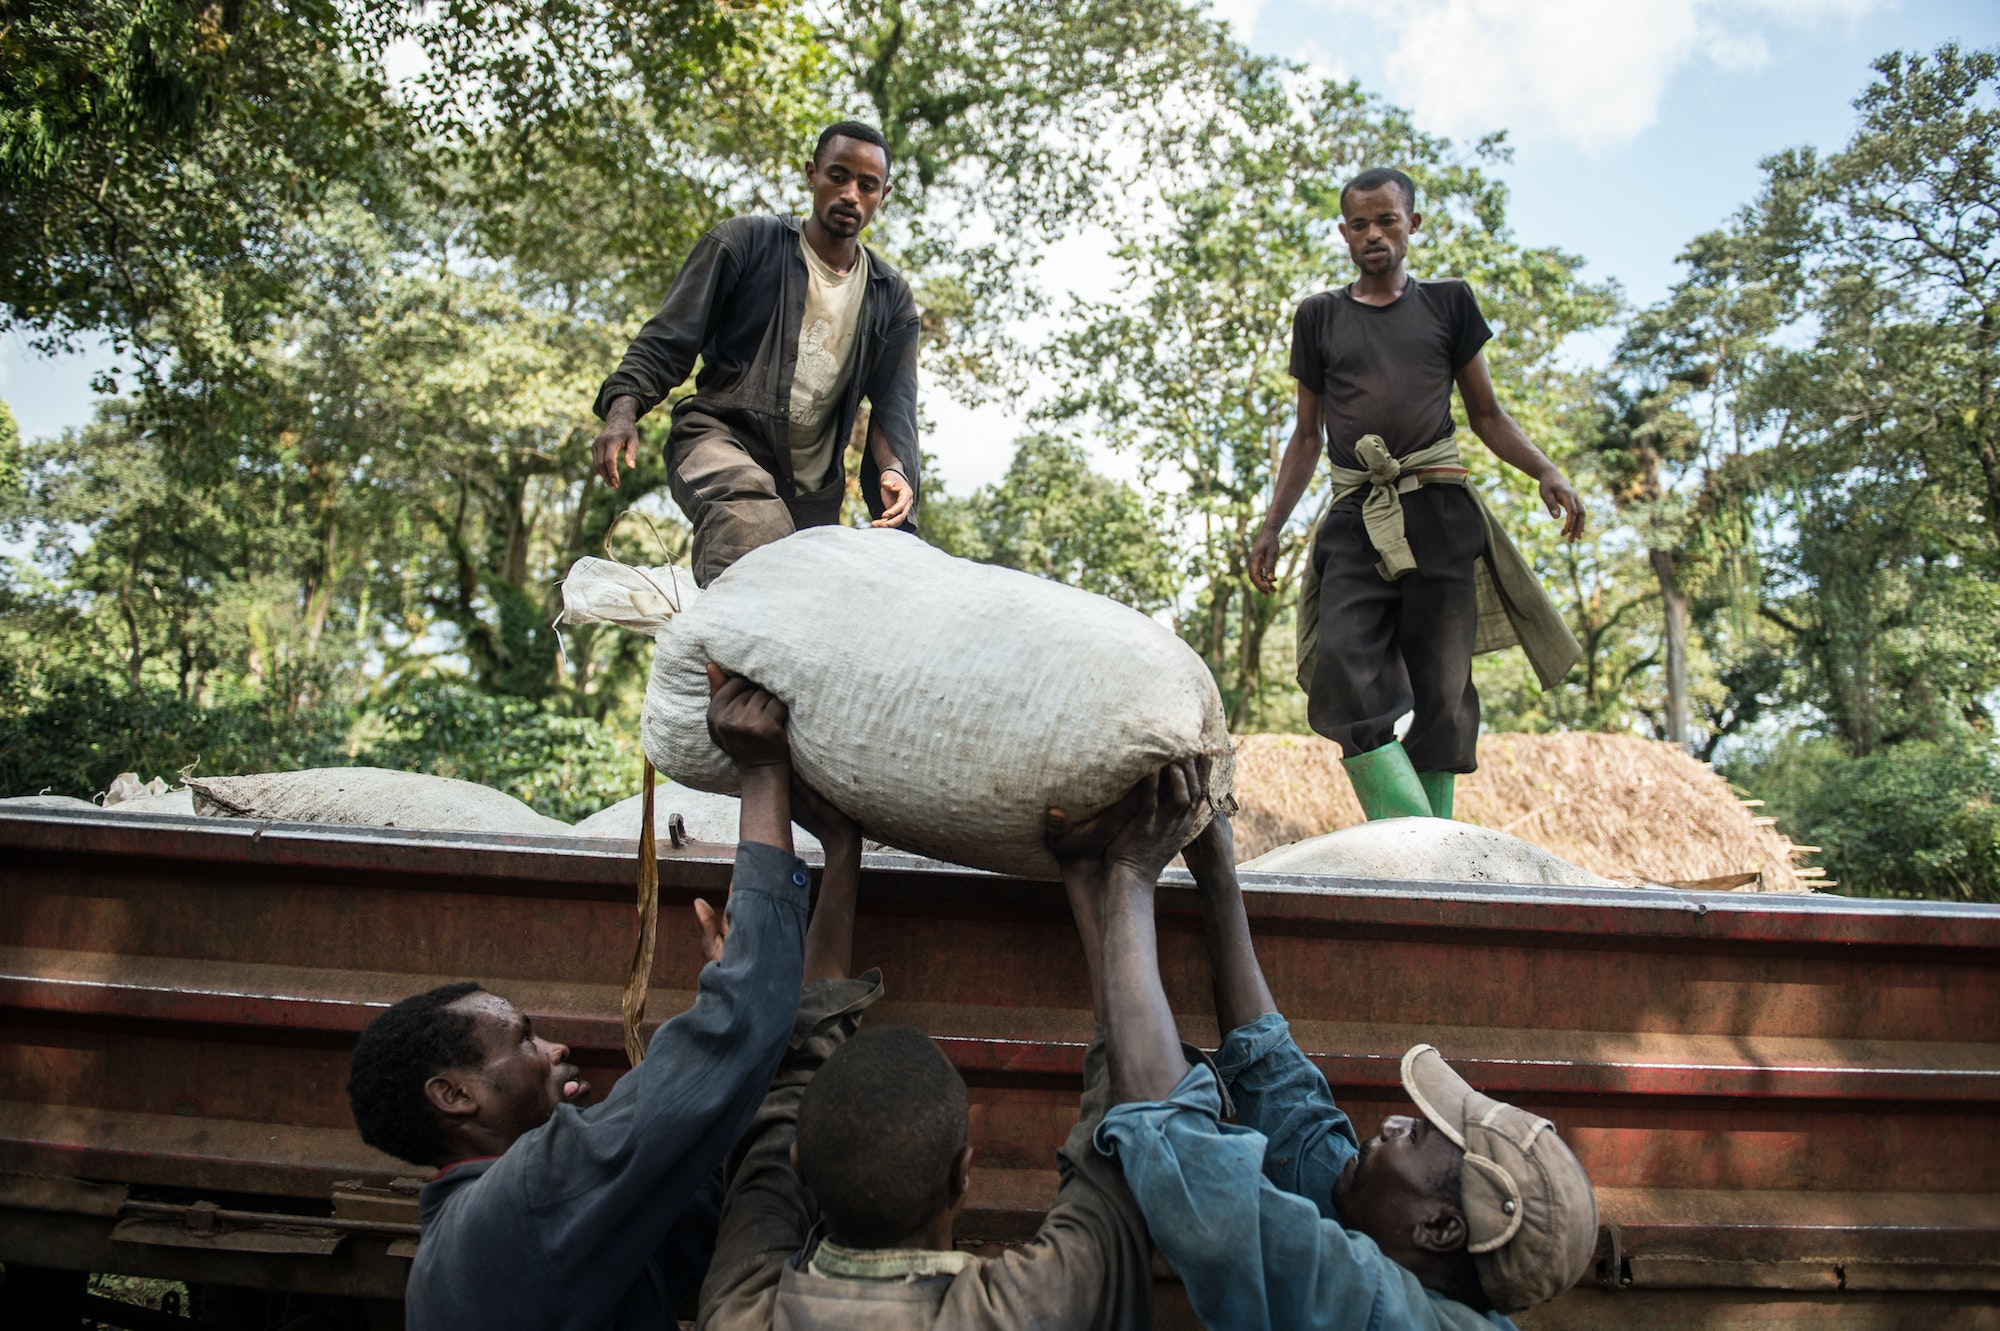 Workers load sacks packed with dried coffee beans to be transported to Addis Ababa, where the beans will be sold.